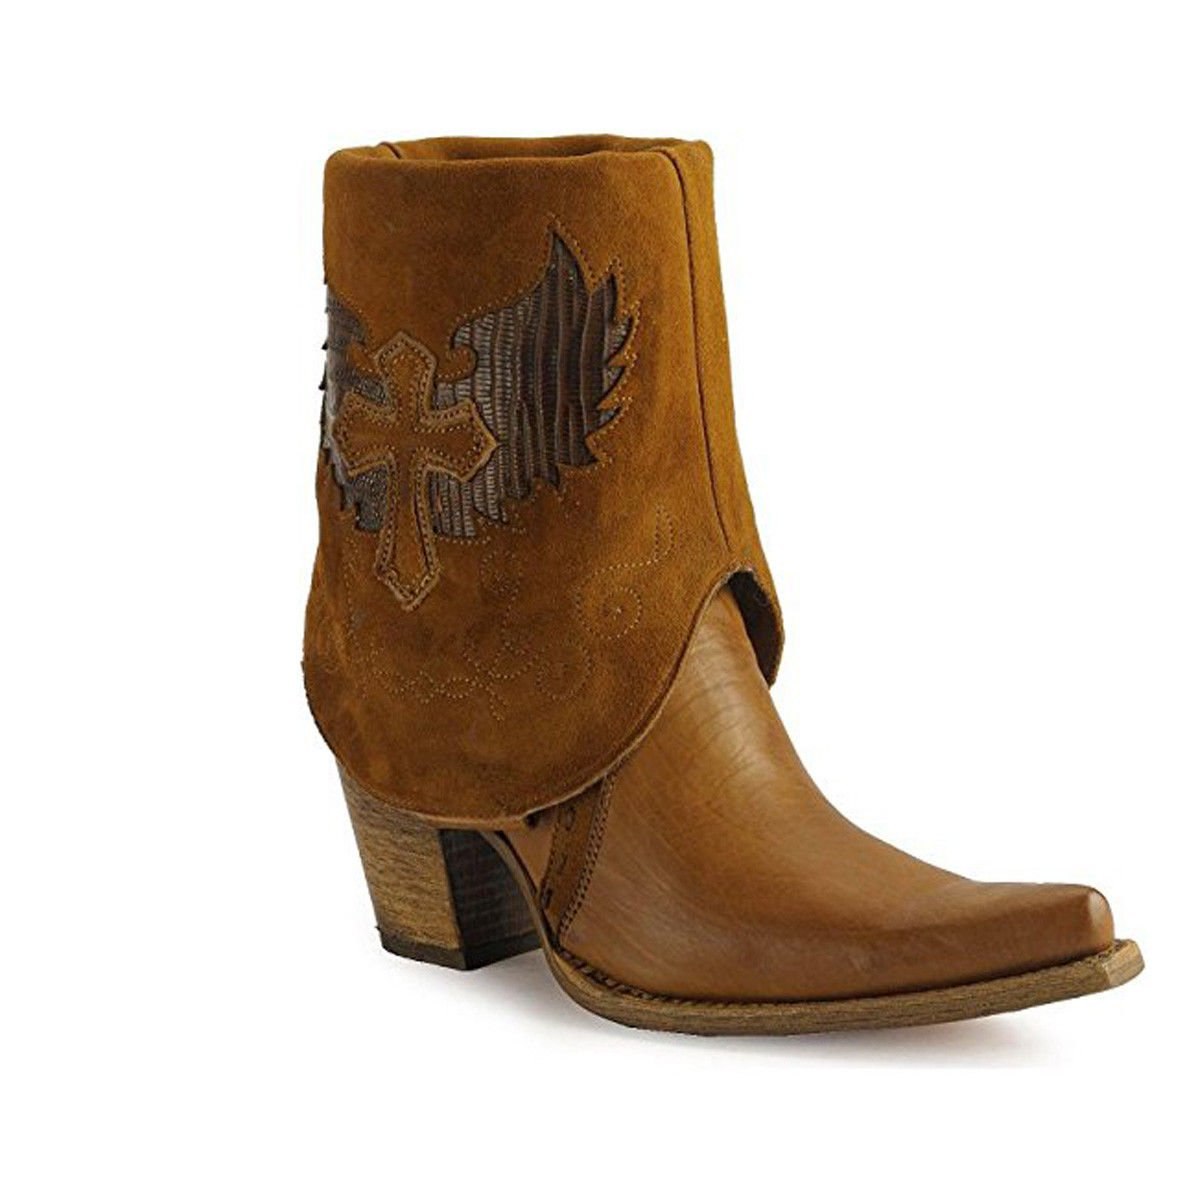 af56244bd20 Details about CORRAL Women's Cross Lizard Cuffed Pointed Toe Cowgirl Boots  C2213